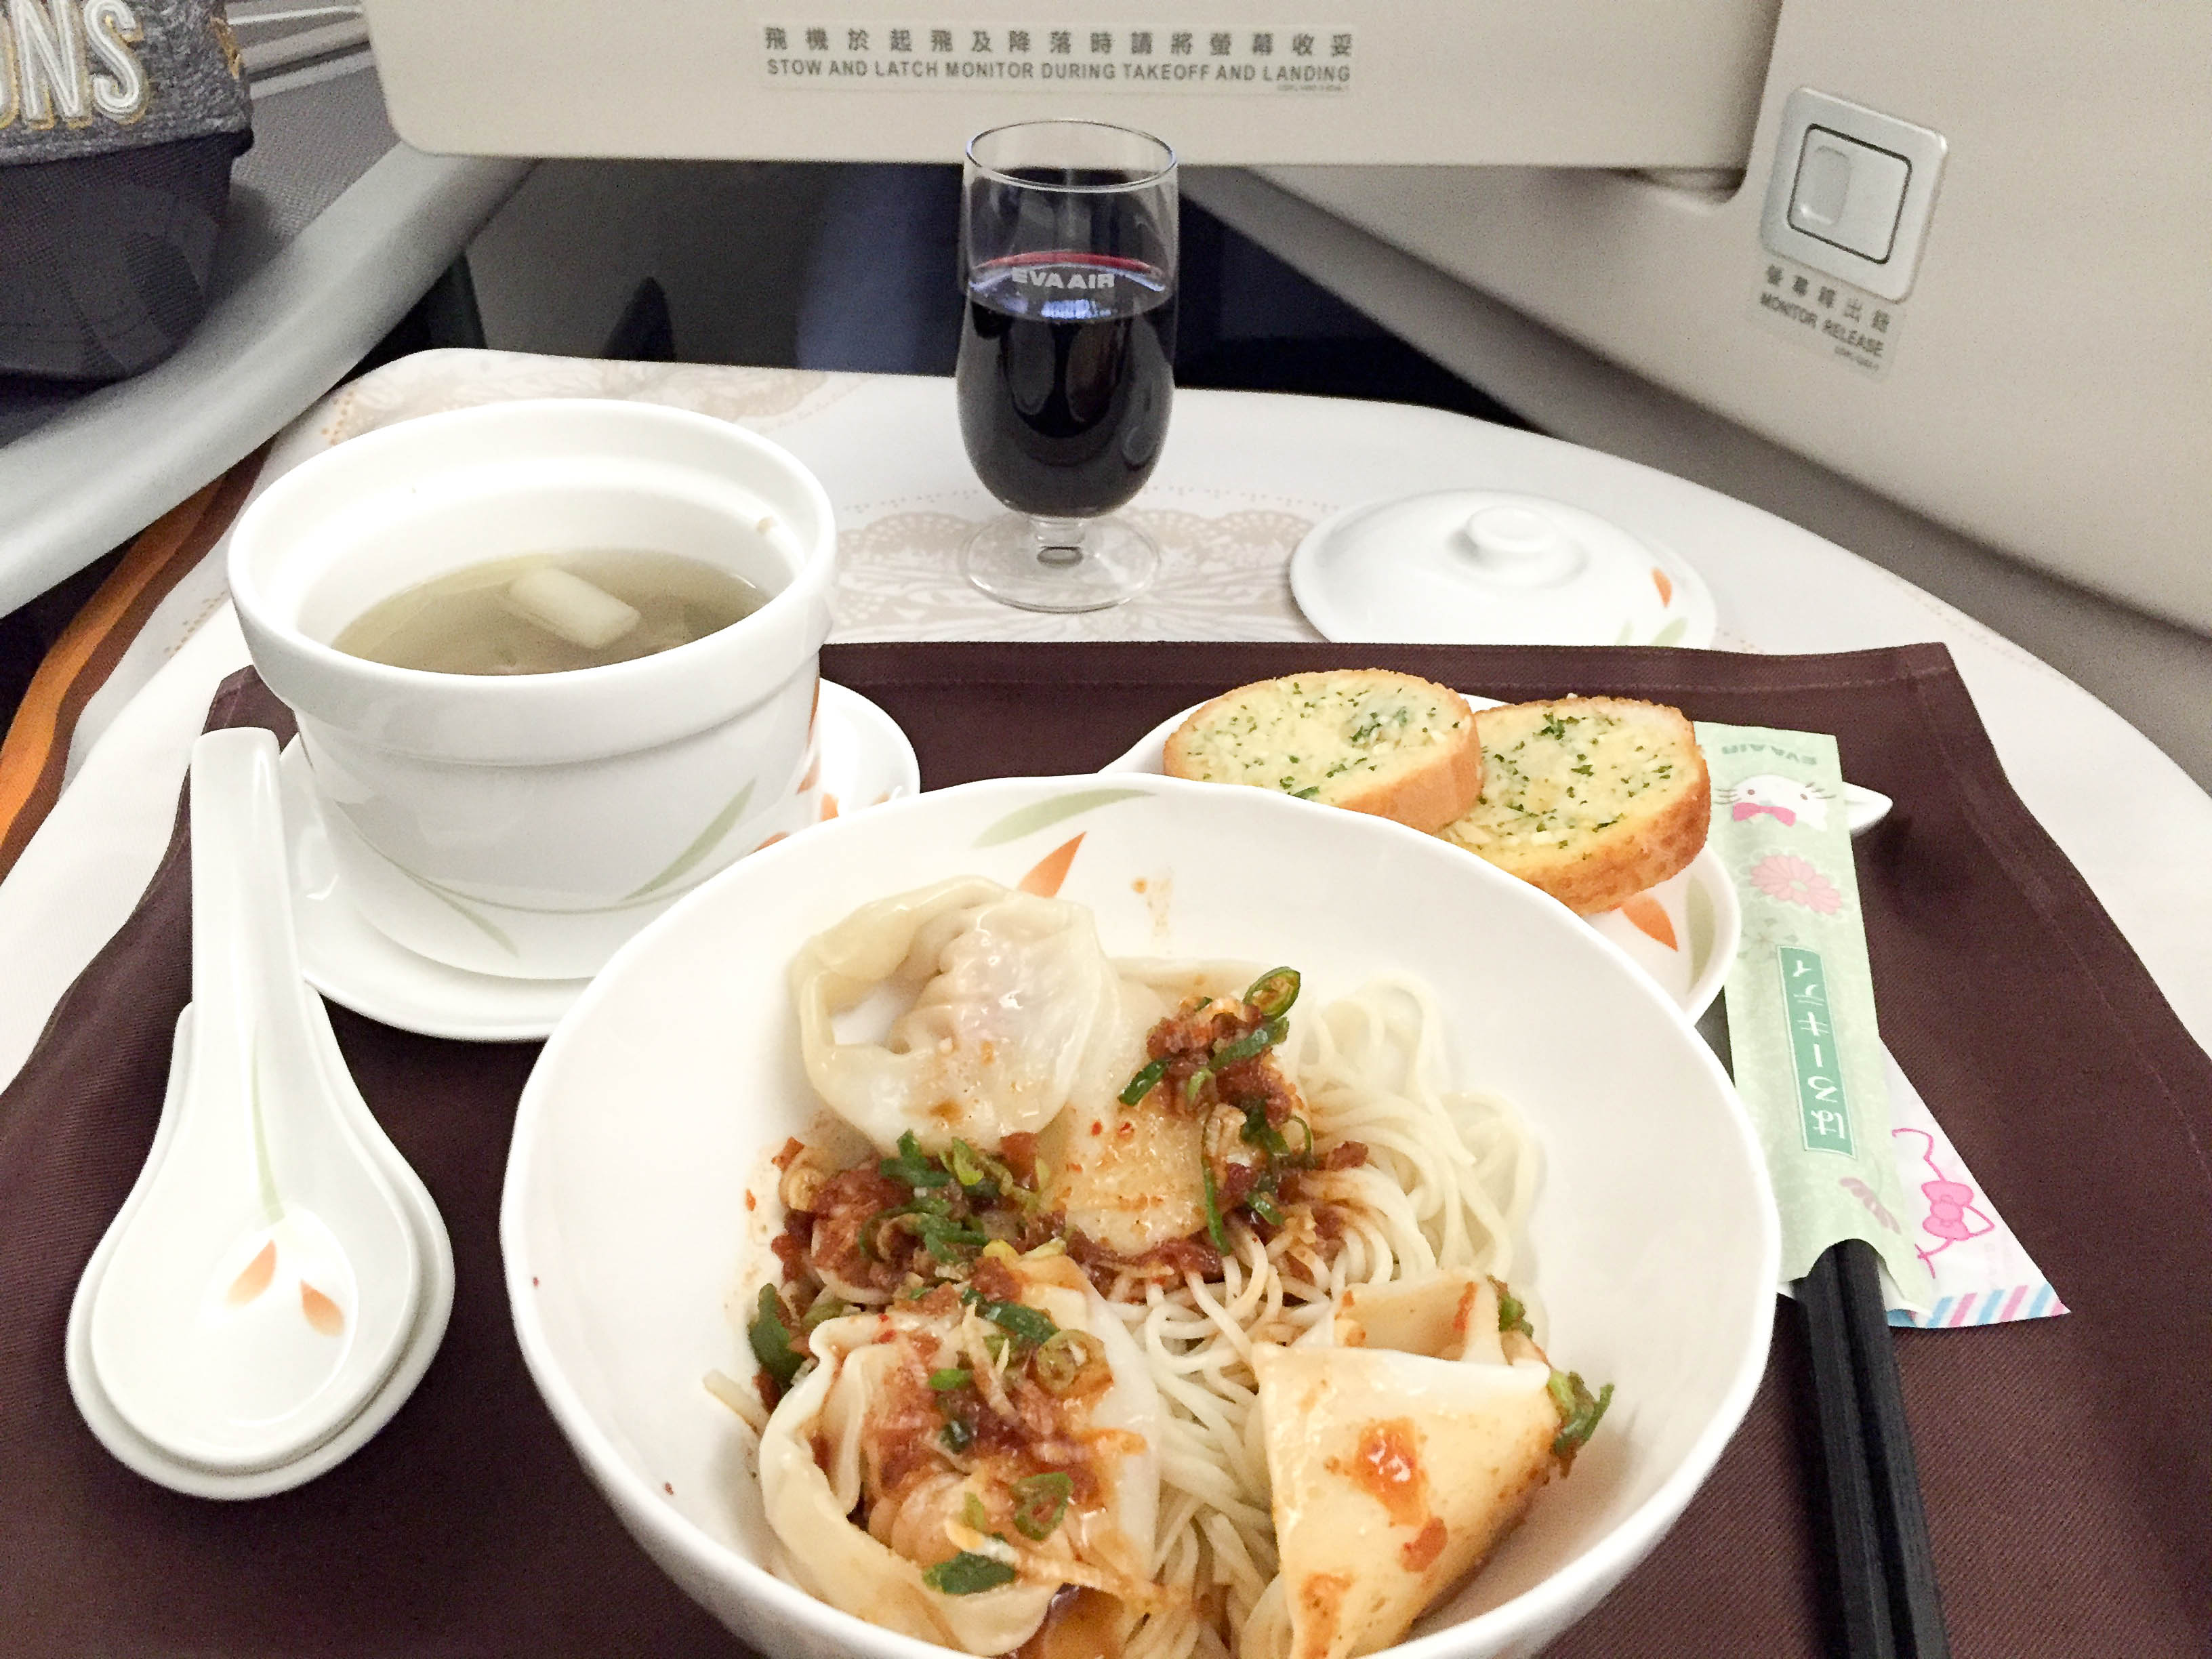 EVA Air in-flight dining